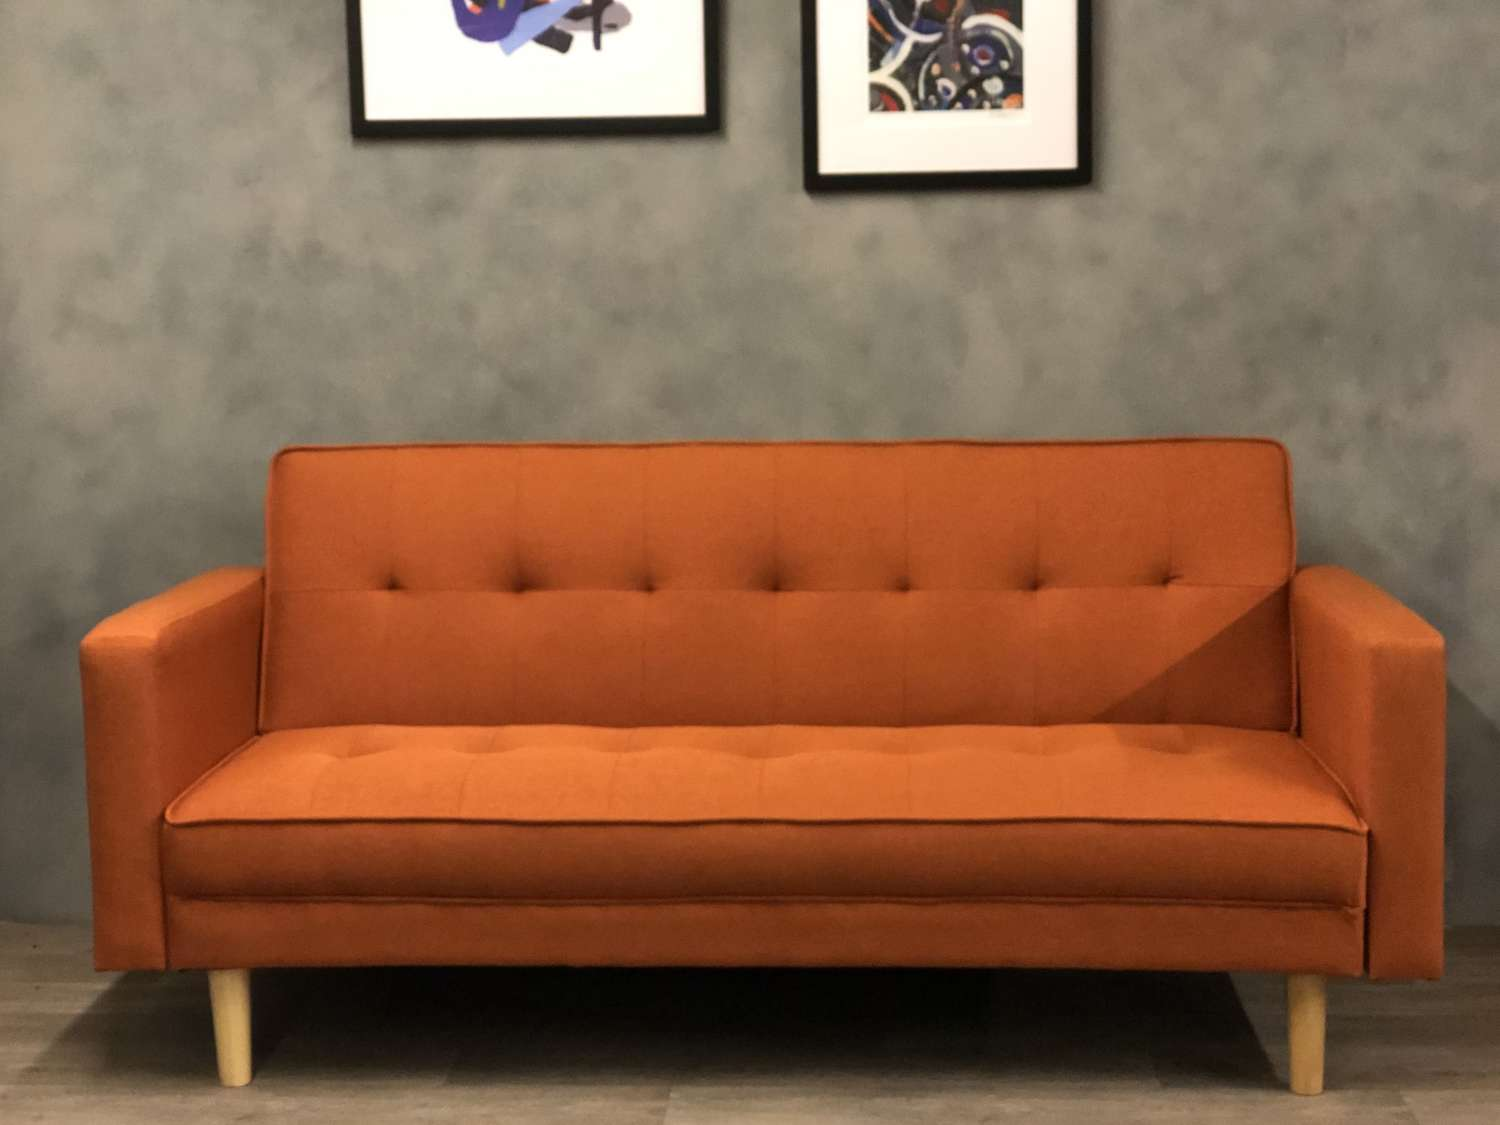 Orange midcentury style double sofa/ sofa bed.